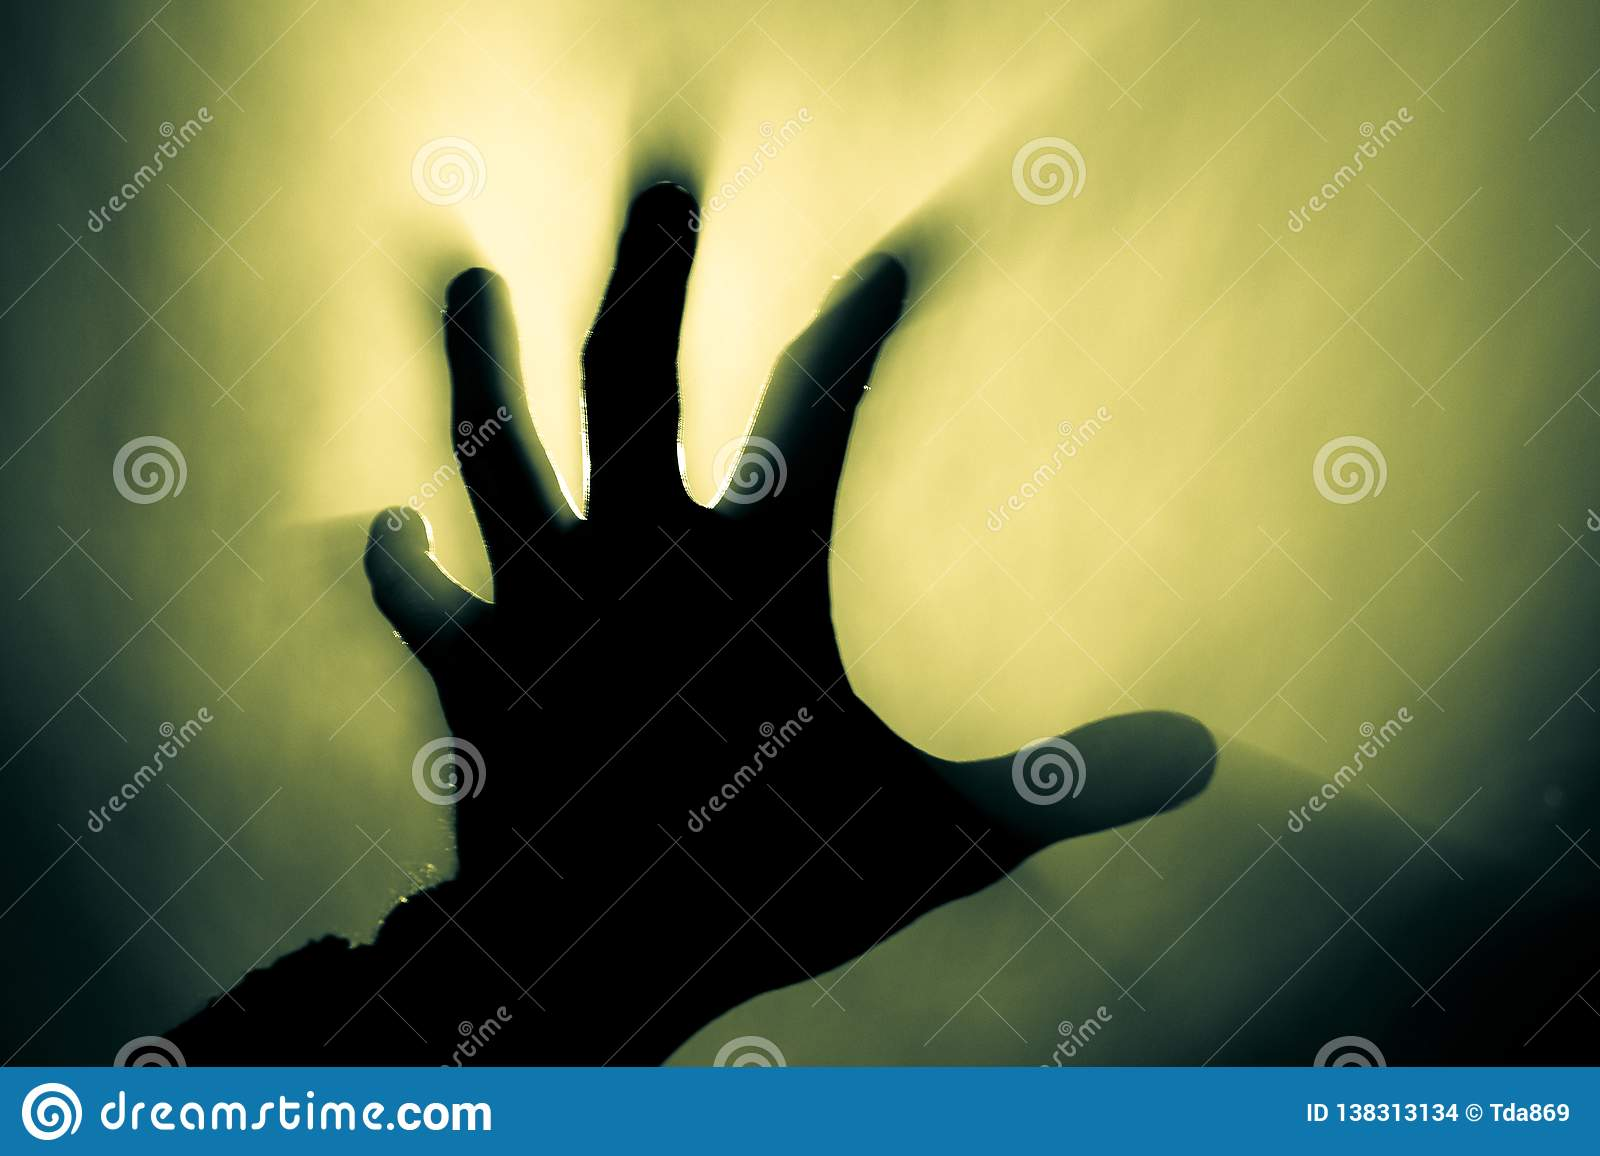 Blurred hand in smoke in a fire in the harsh light of the sun